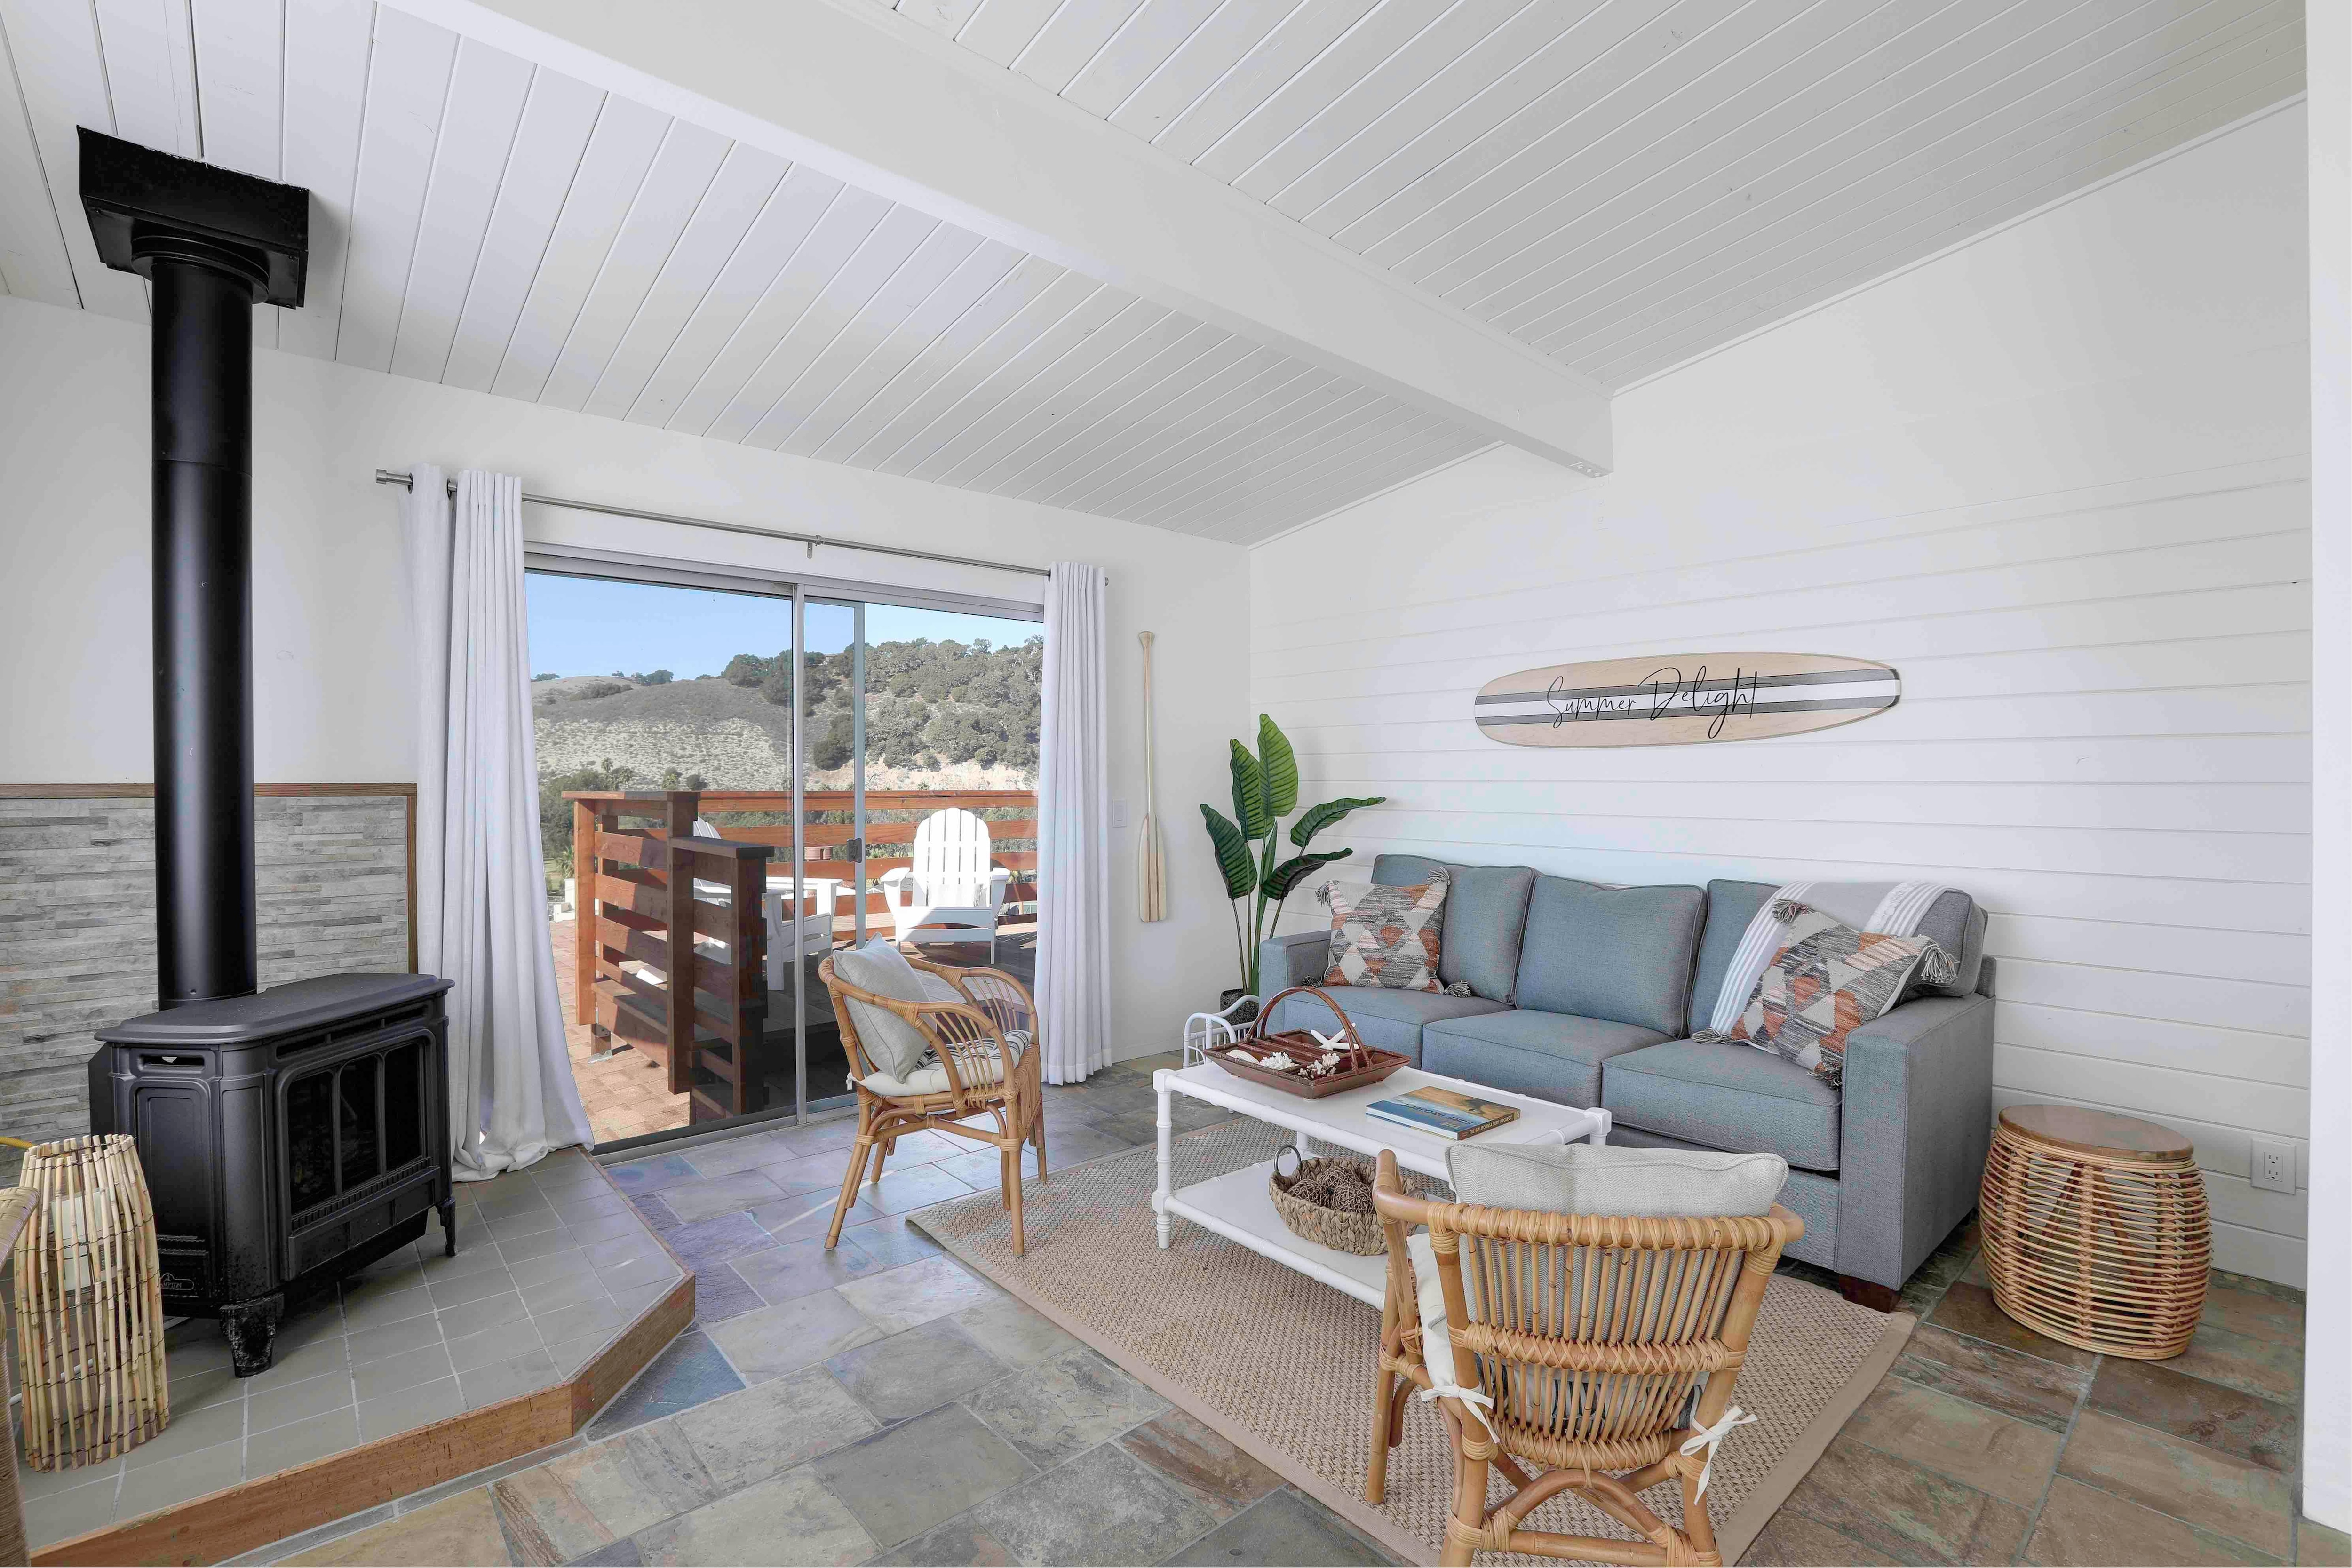 Property Image 1 - Renovated Traditional Condo In Heart of Avila Beach